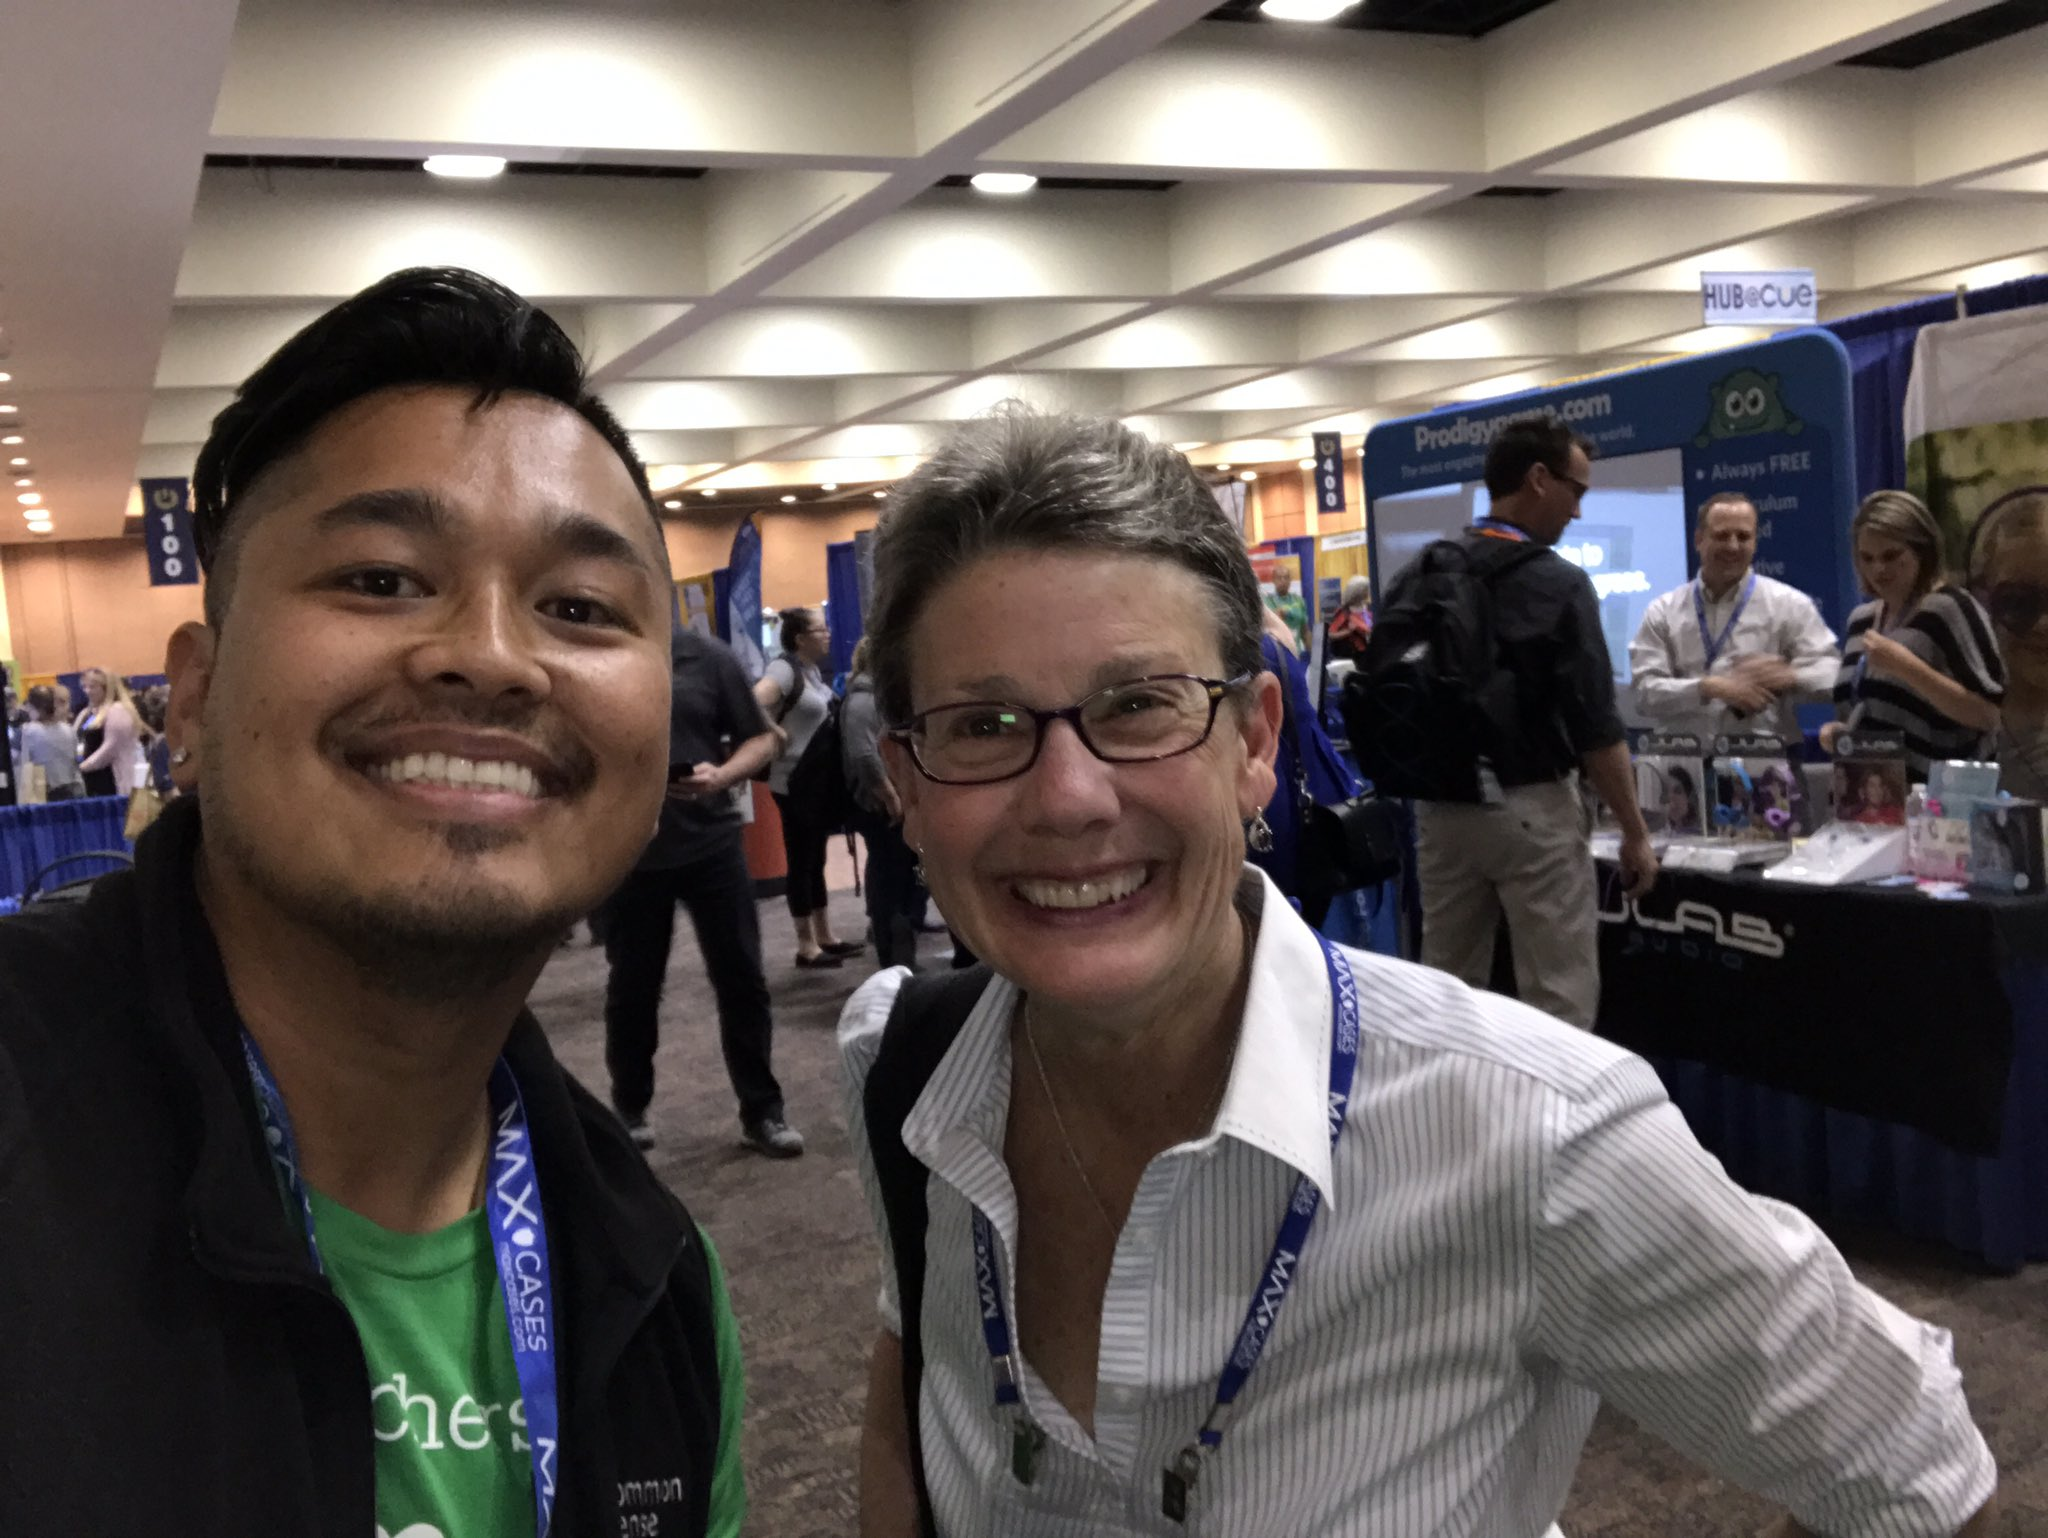 Hey @EllenSeebold hung out with some friends like Jan Half here at #cue17 you two need to get together. https://t.co/3l2XSsTdDu